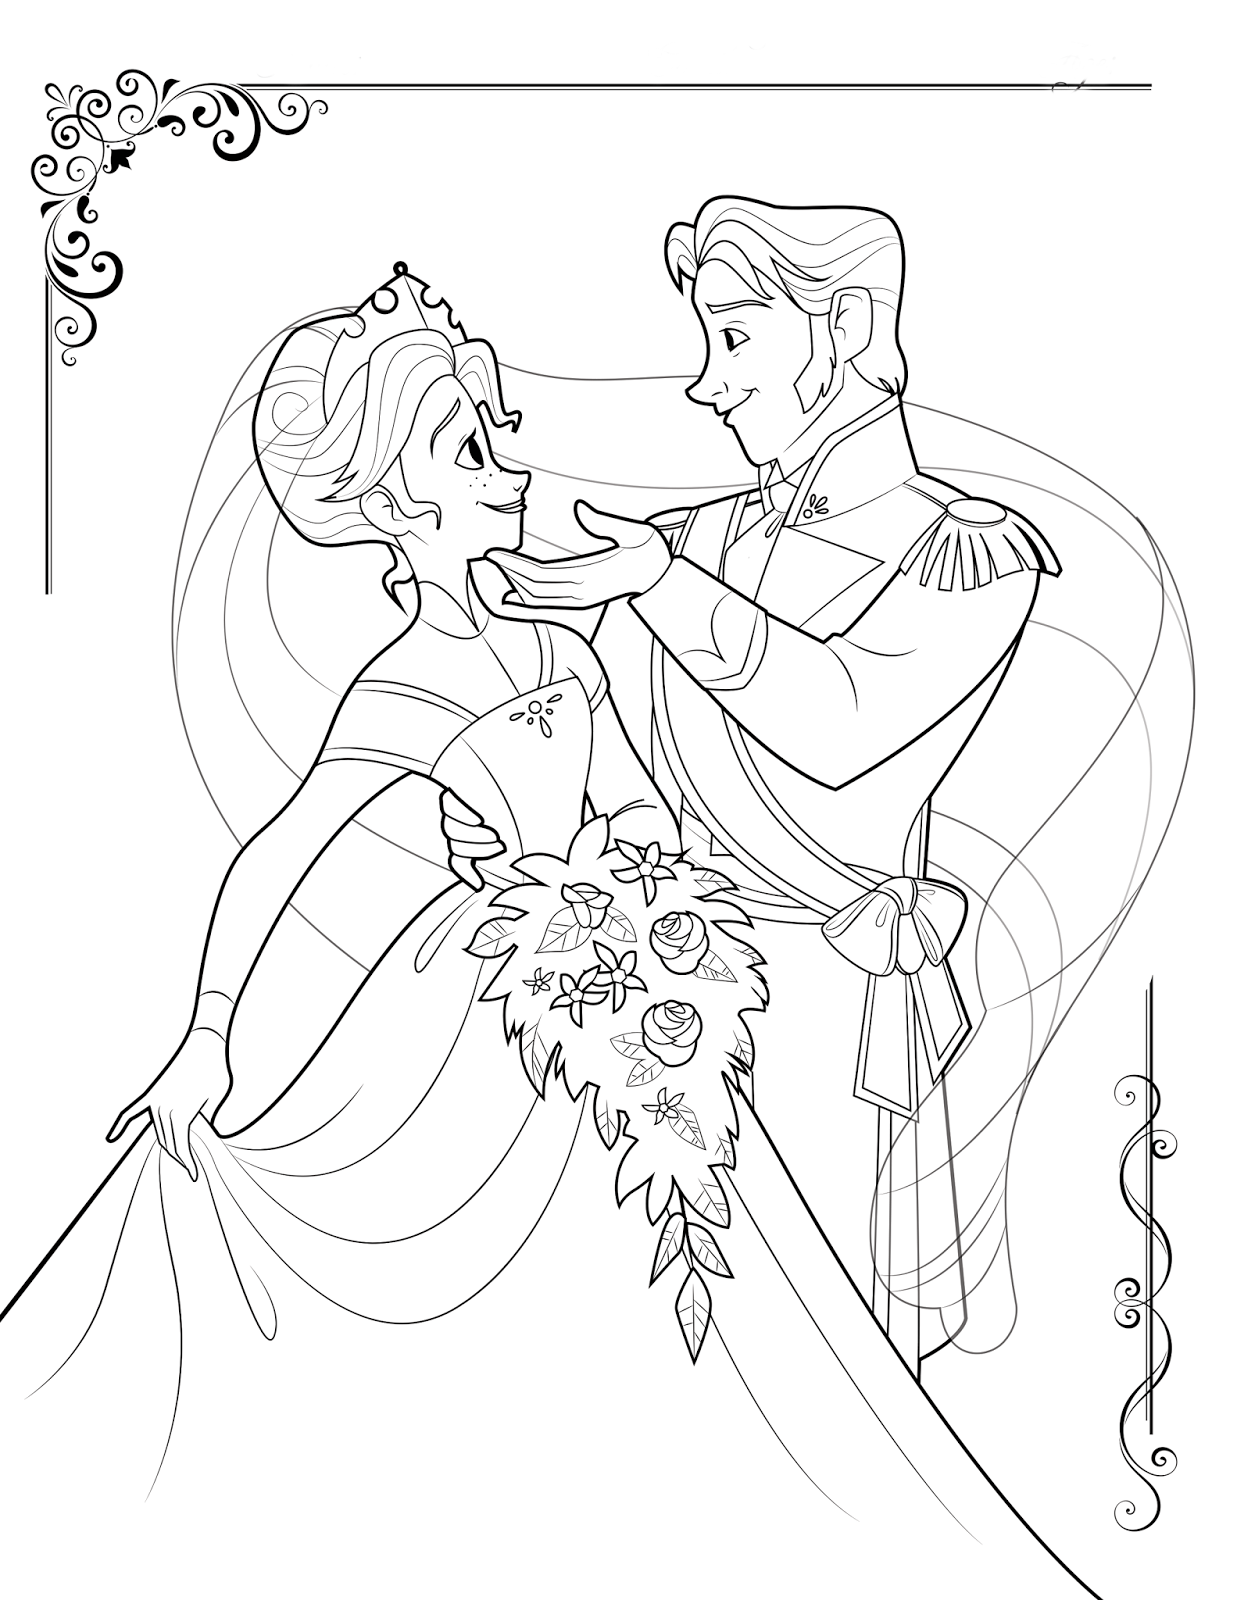 frozen printables coloring pages free printable frozen coloring pages for kids best coloring pages printables frozen